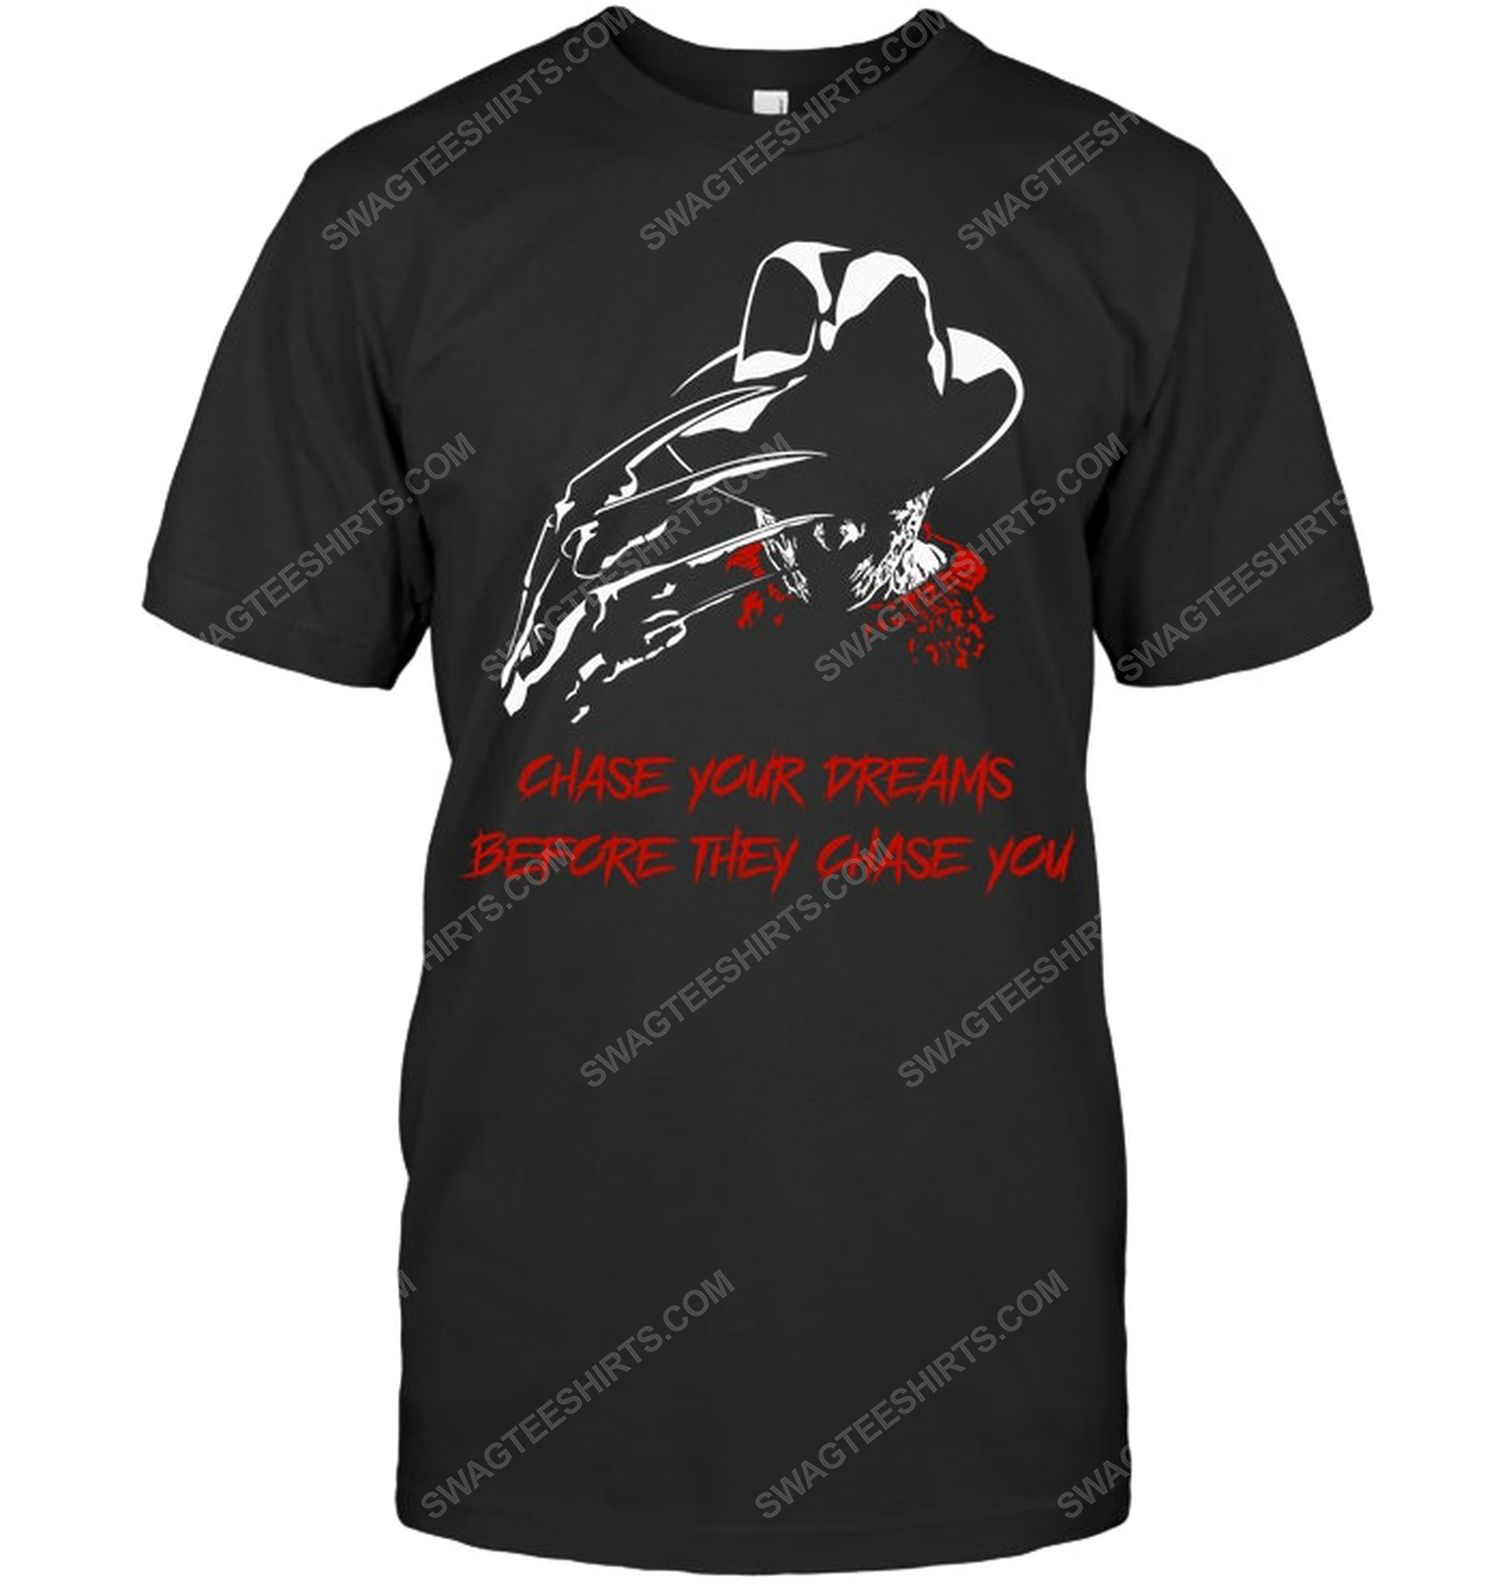 Chase your dreams before they chase you freddy krueger shirt 1